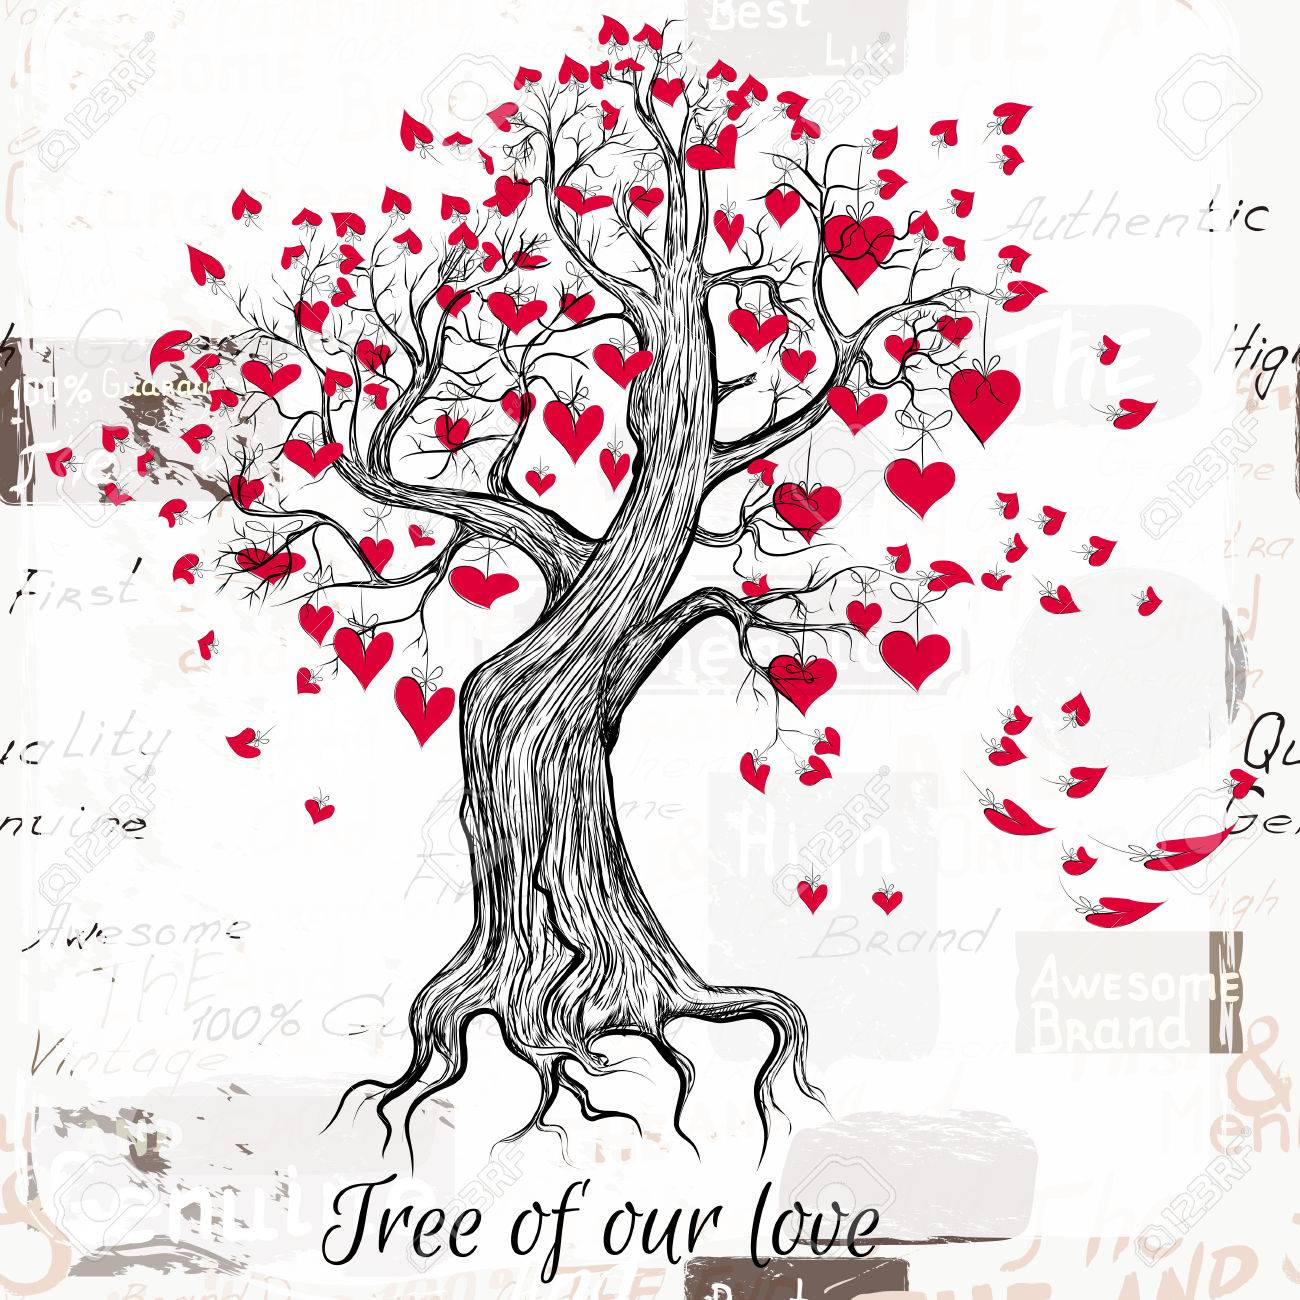 Hand Drawn Valentines Day Tree With Red Hearts Tree Of Our Love